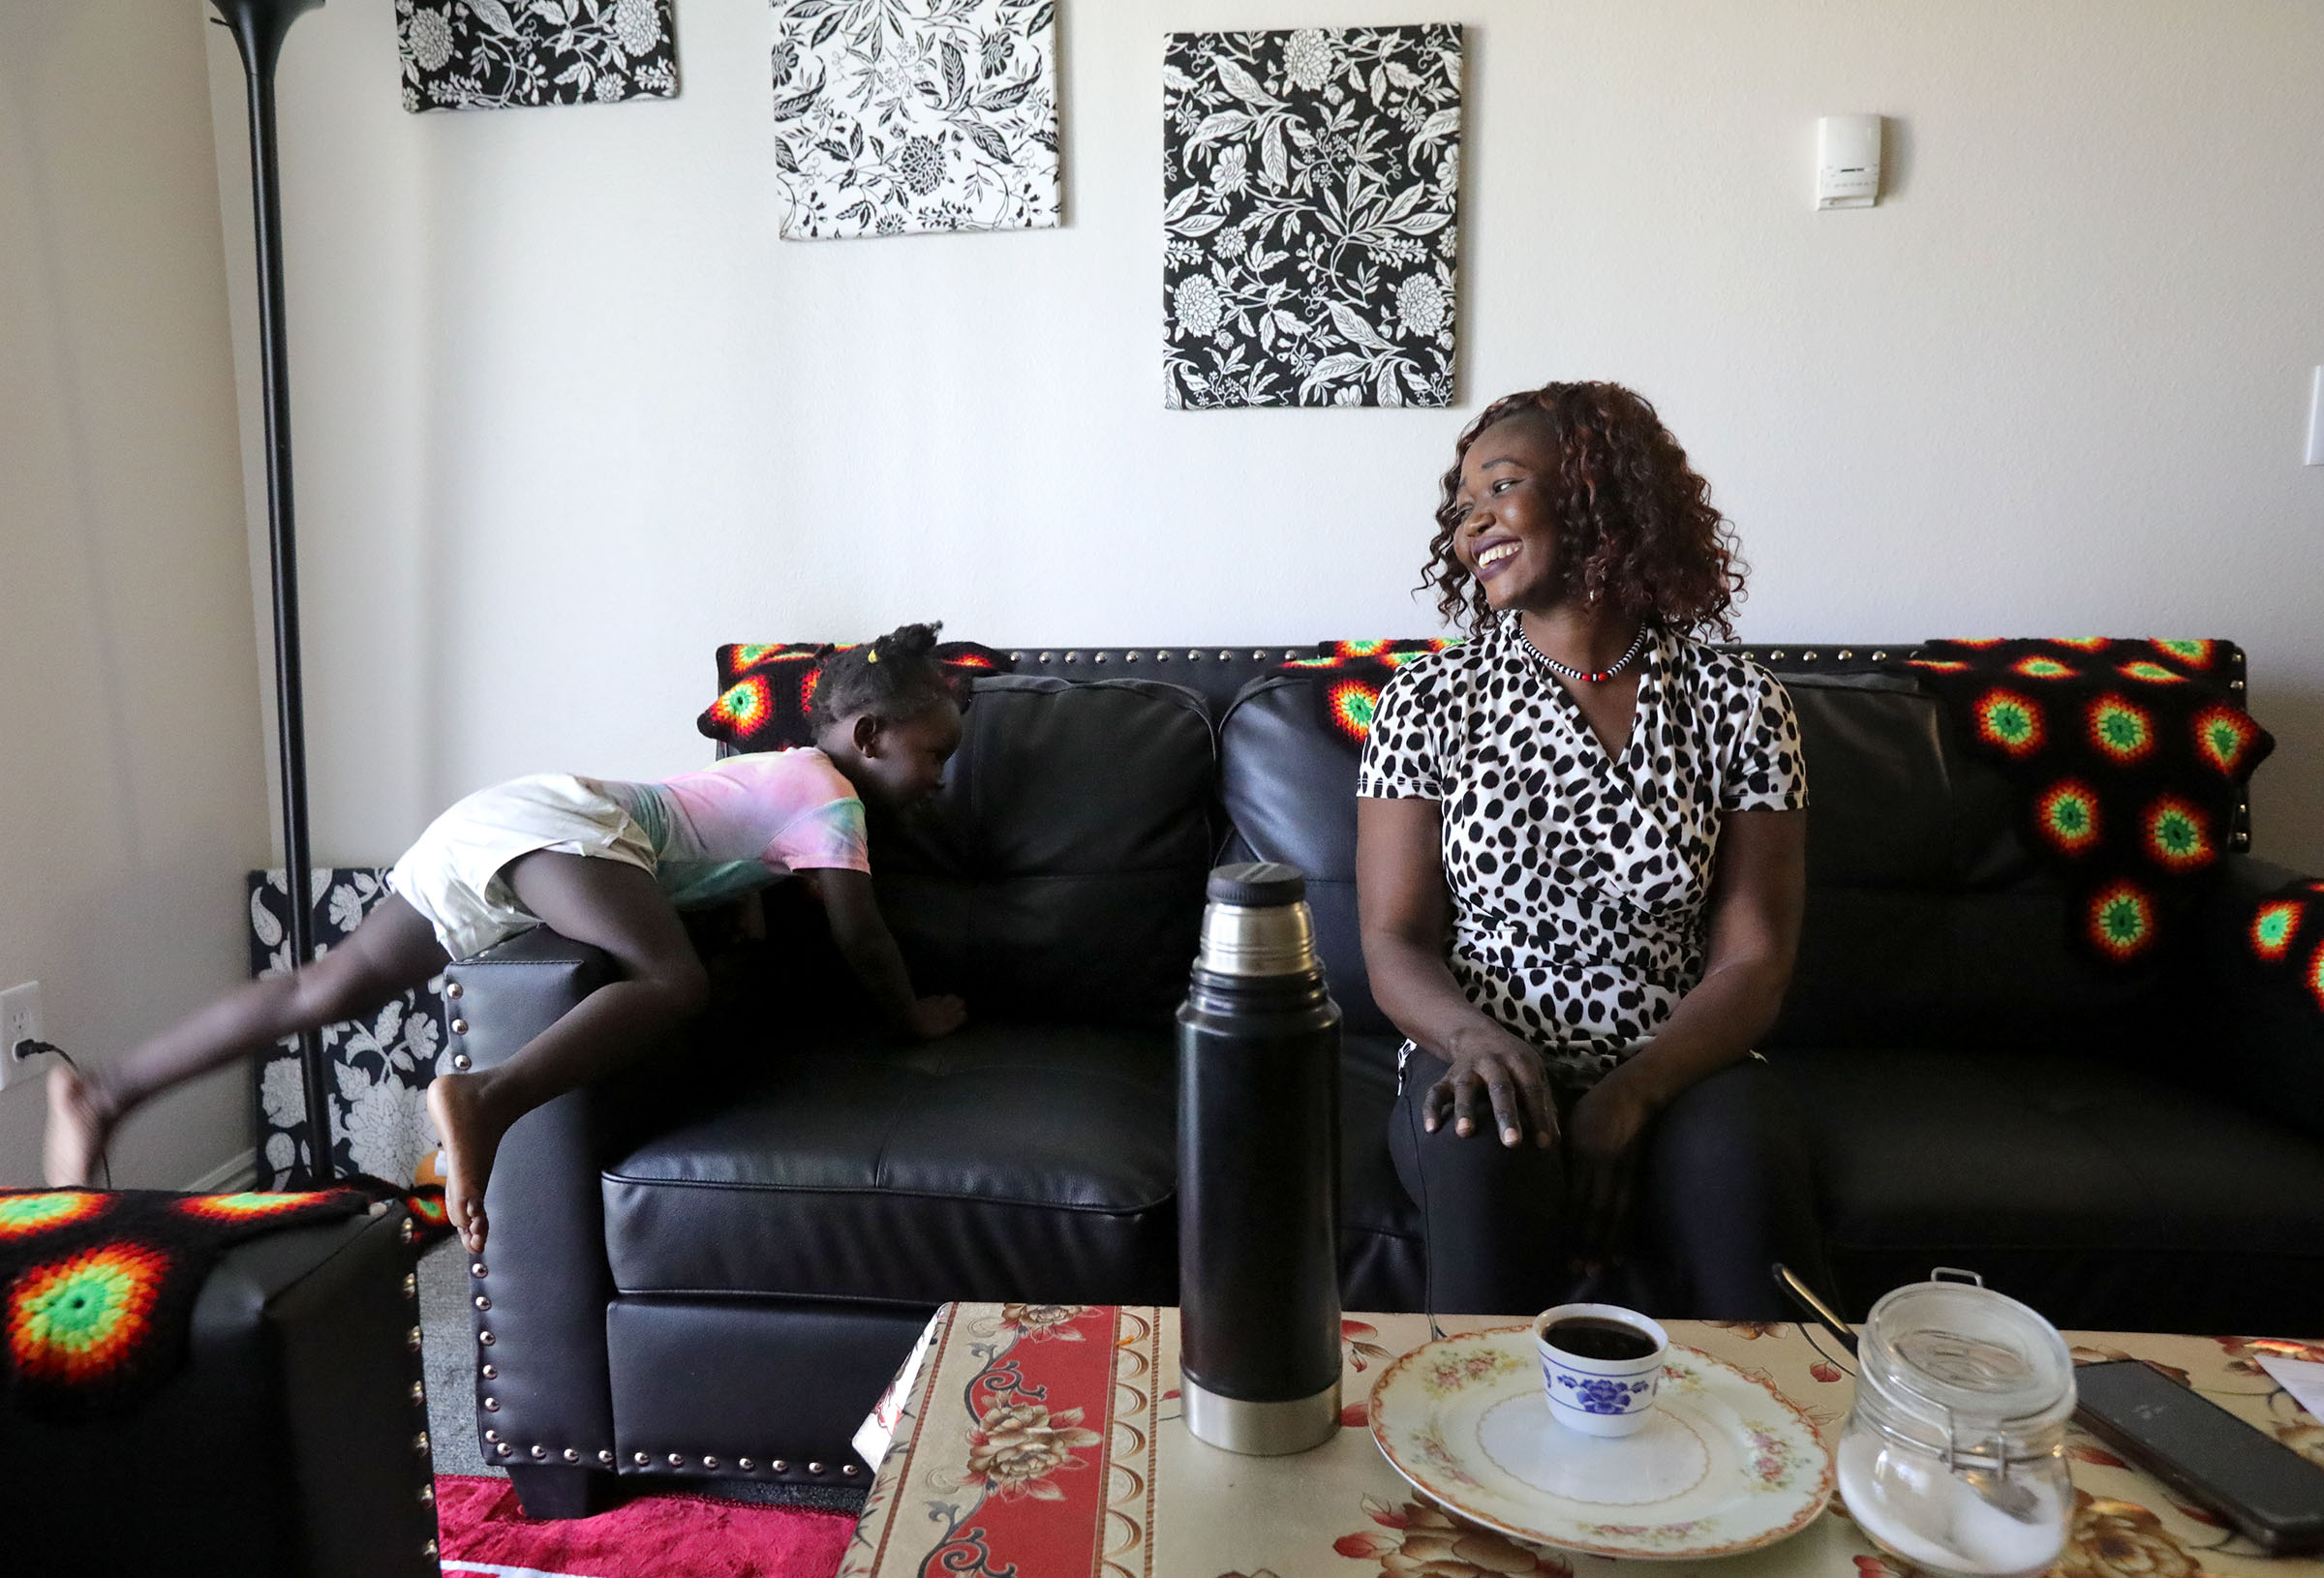 Siyanna Inna climbs on the couch as her mother, Tabitha Kwayge, a Sudanese refugee, laughs at their apartment in Midvale, Utah.